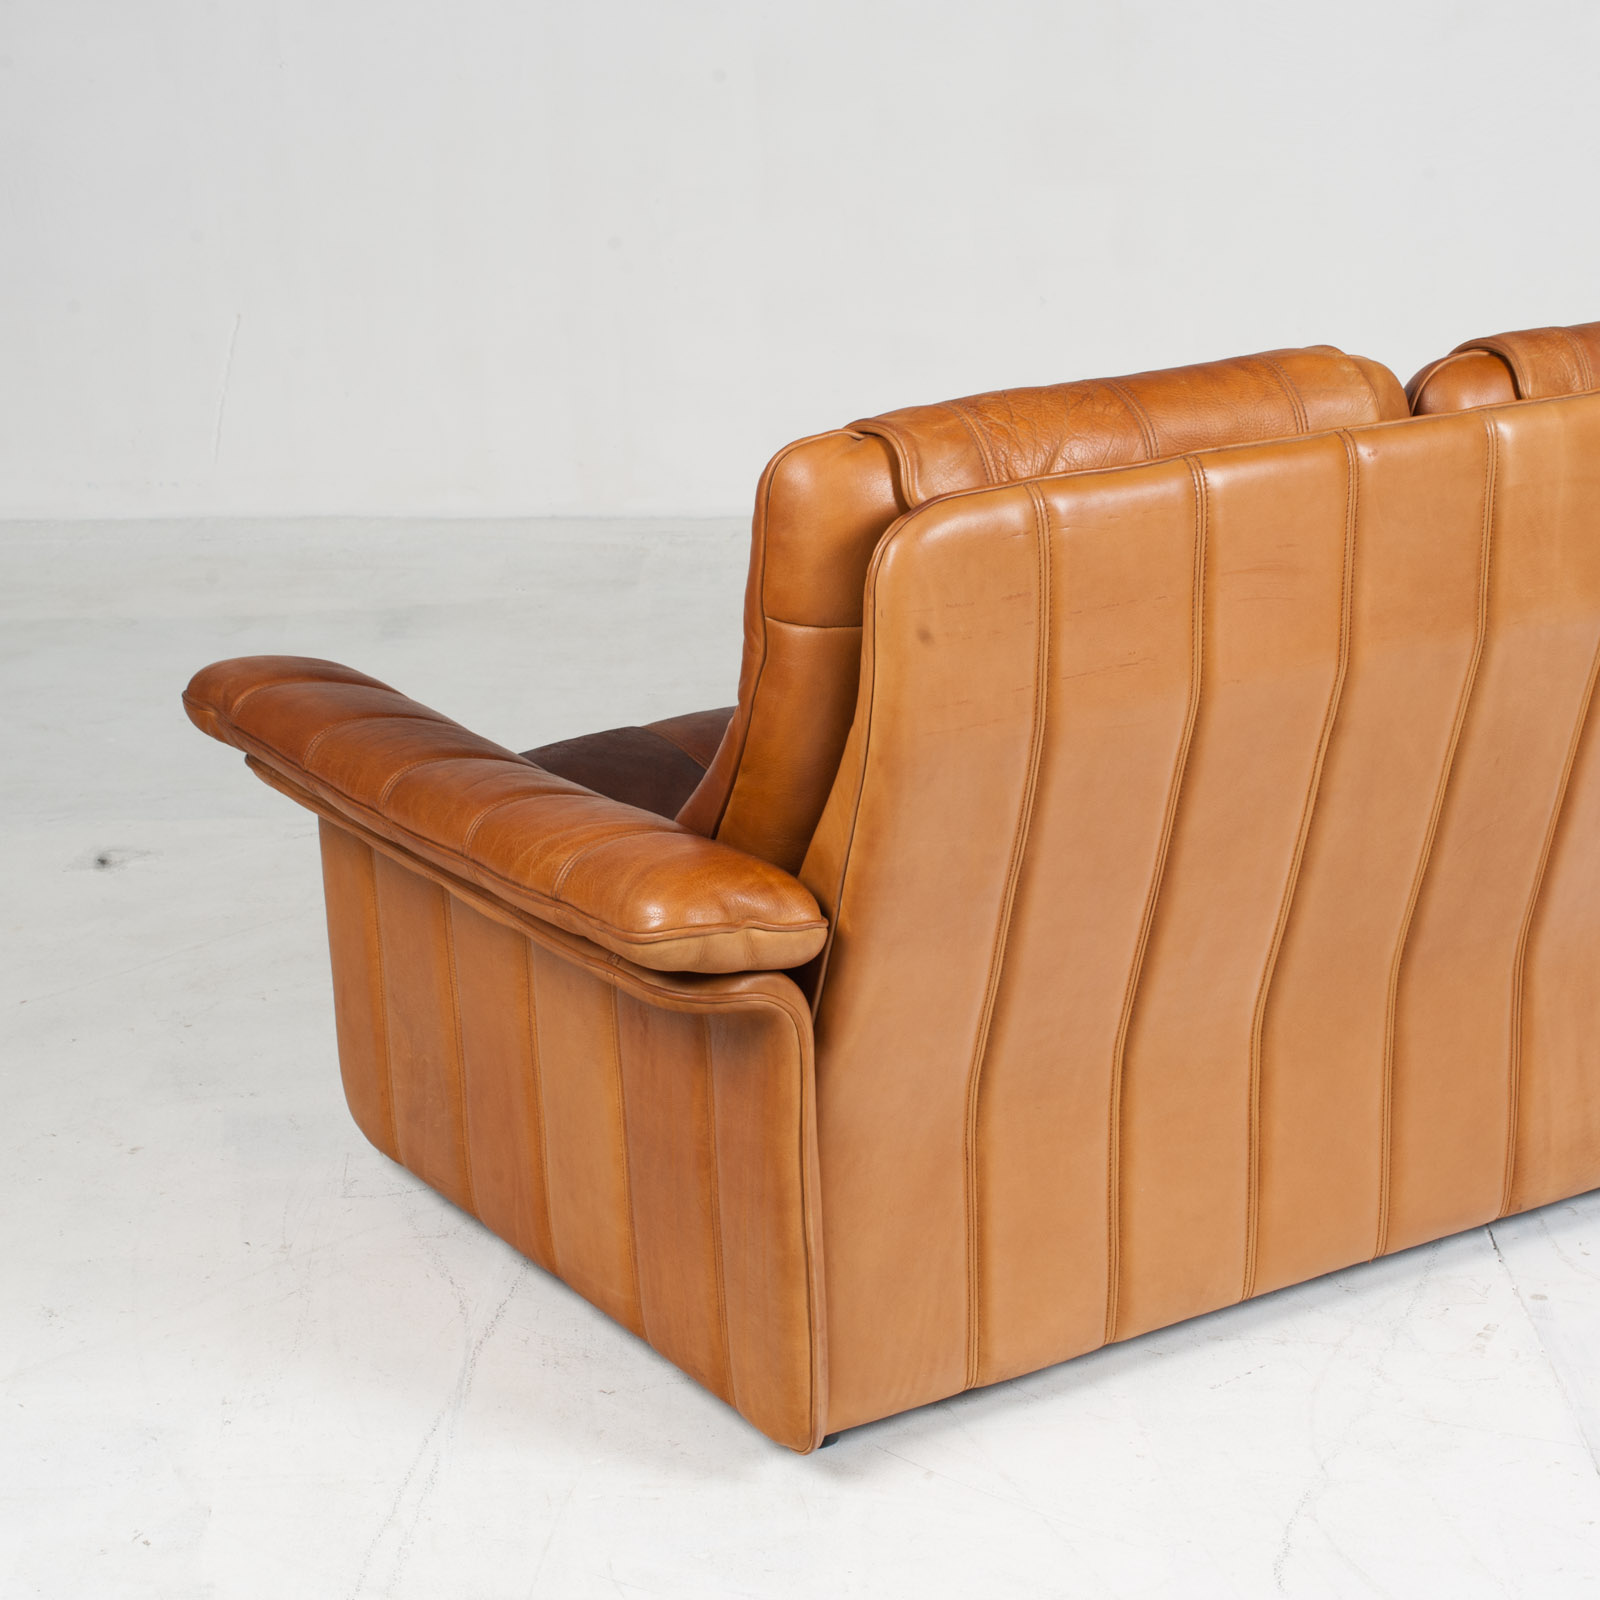 3 Seat Sofa By De Sede In Tan Leather 1970s Switzerland 12